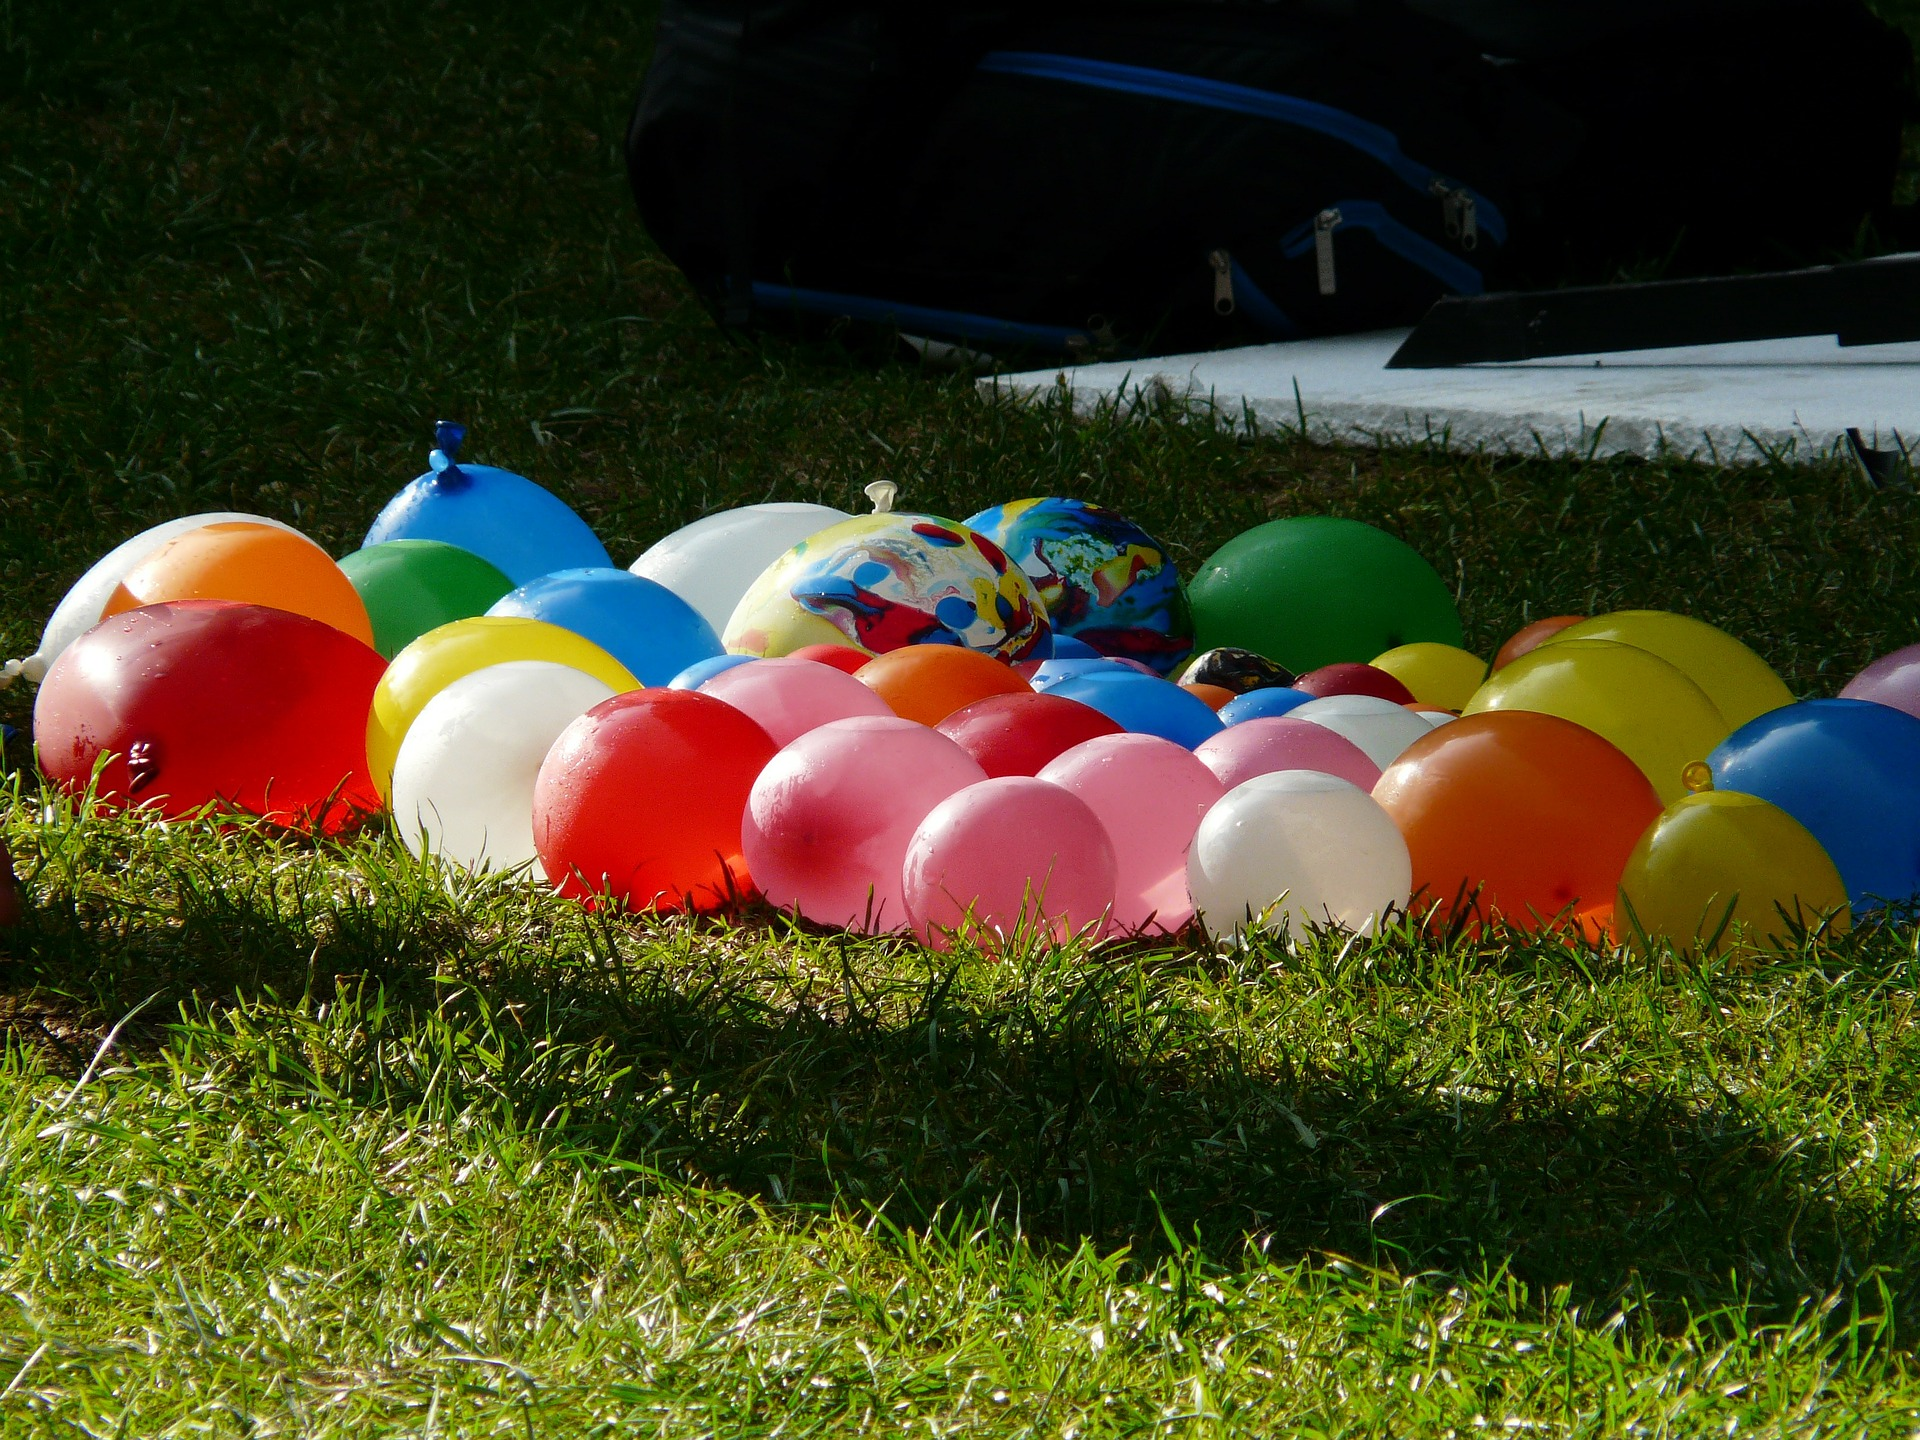 Water balloons placed in the grass field